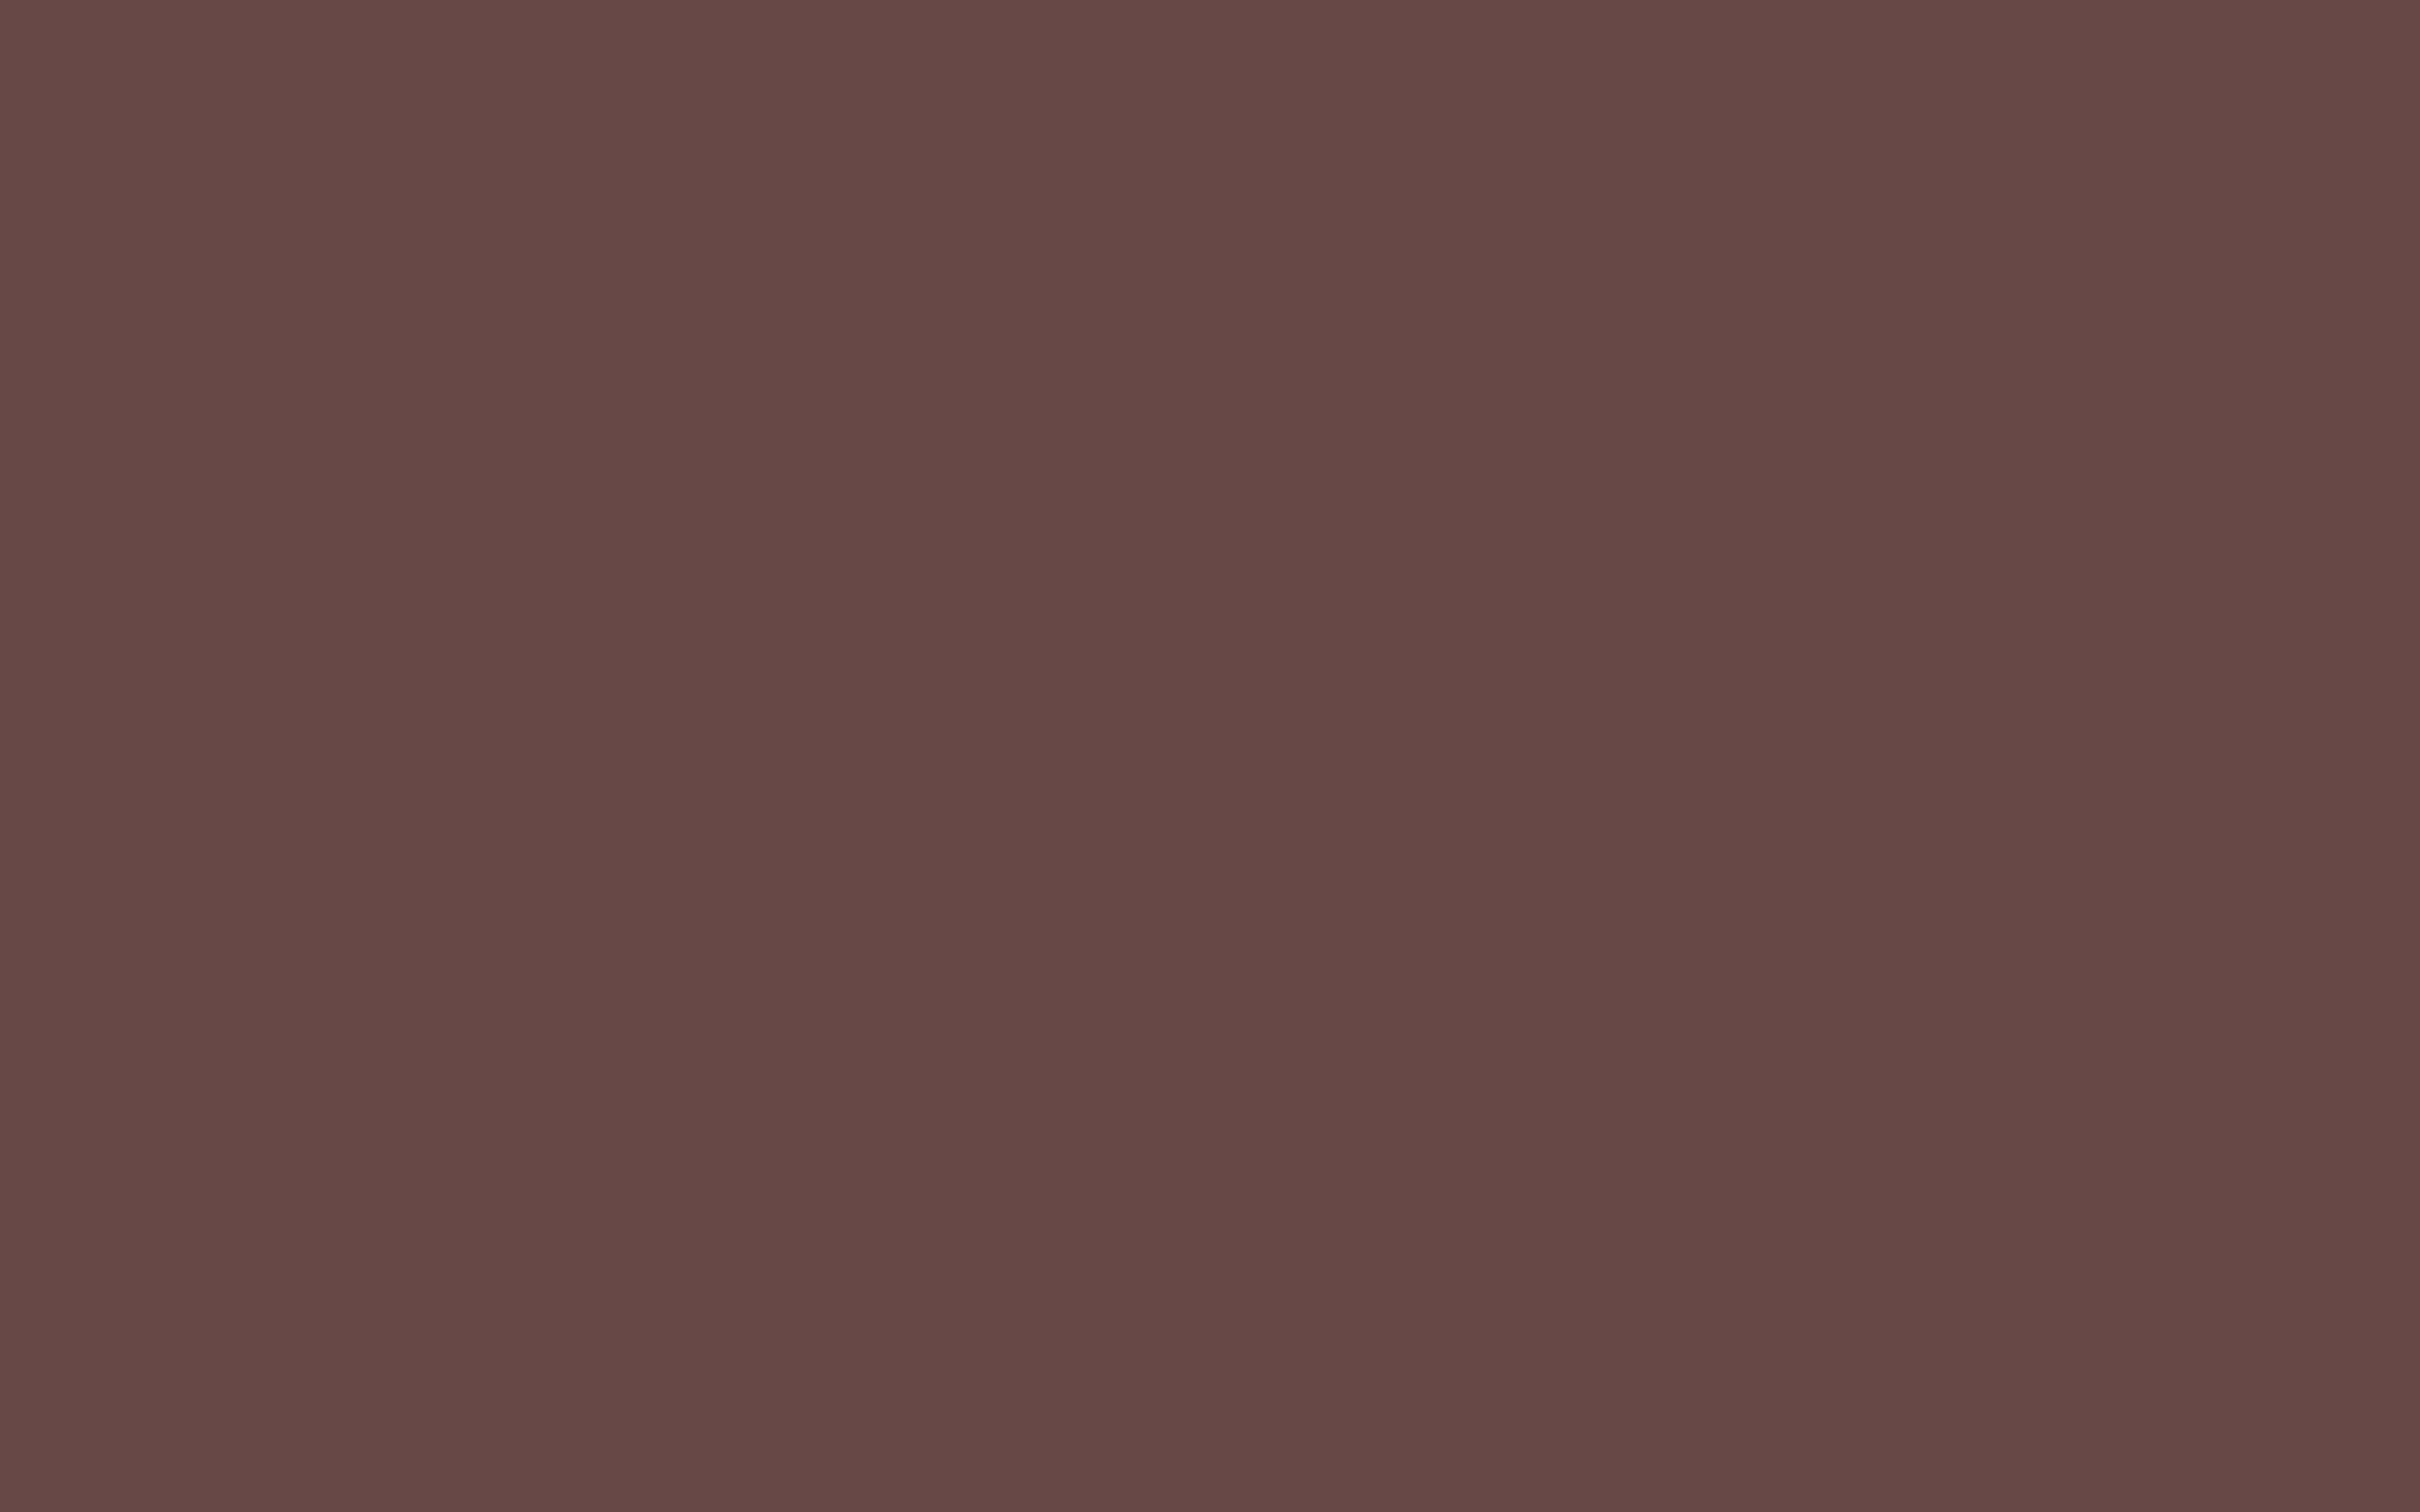 2560x1600 Rose Ebony Solid Color Background